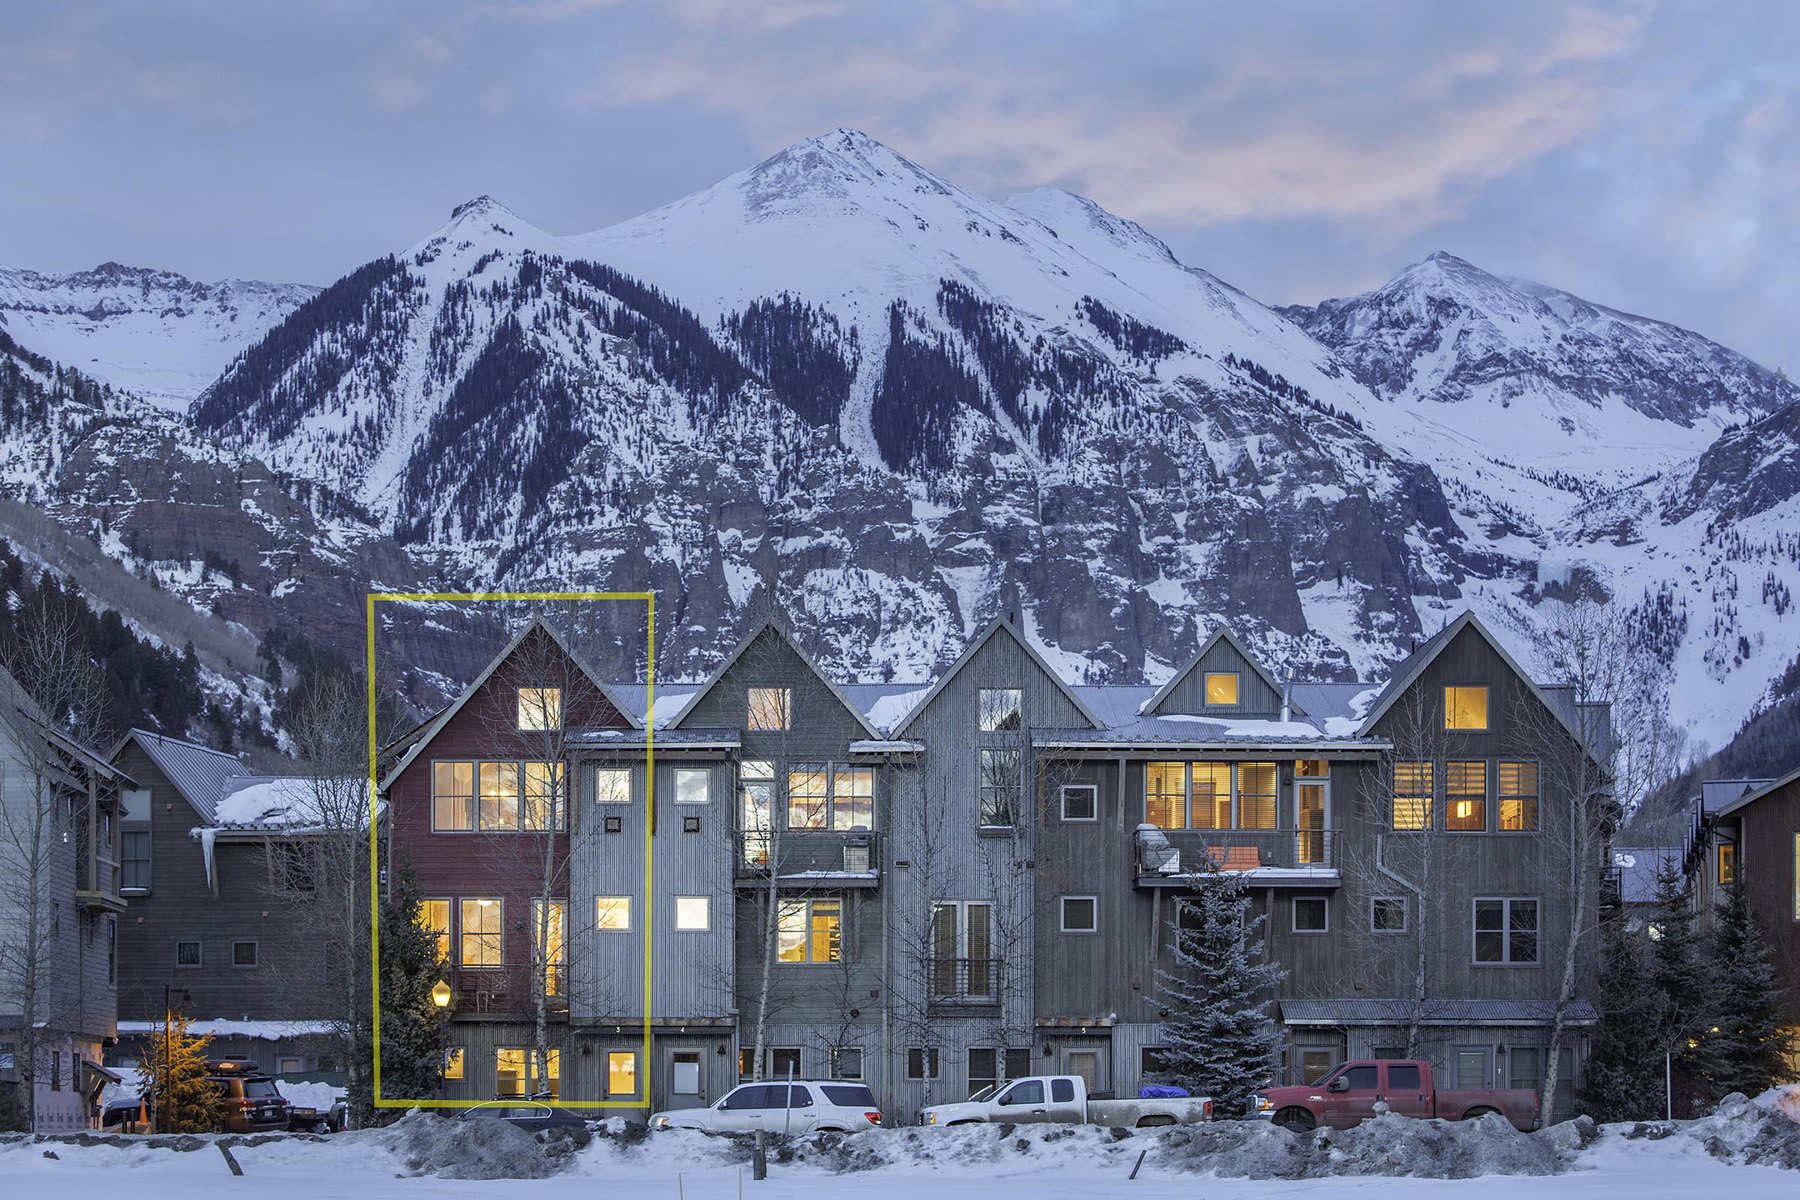 Townhouse for Sale at Owl Meadows 3 240 South Mahoney Drive, Unit 3 Telluride, Colorado, 81435 United States